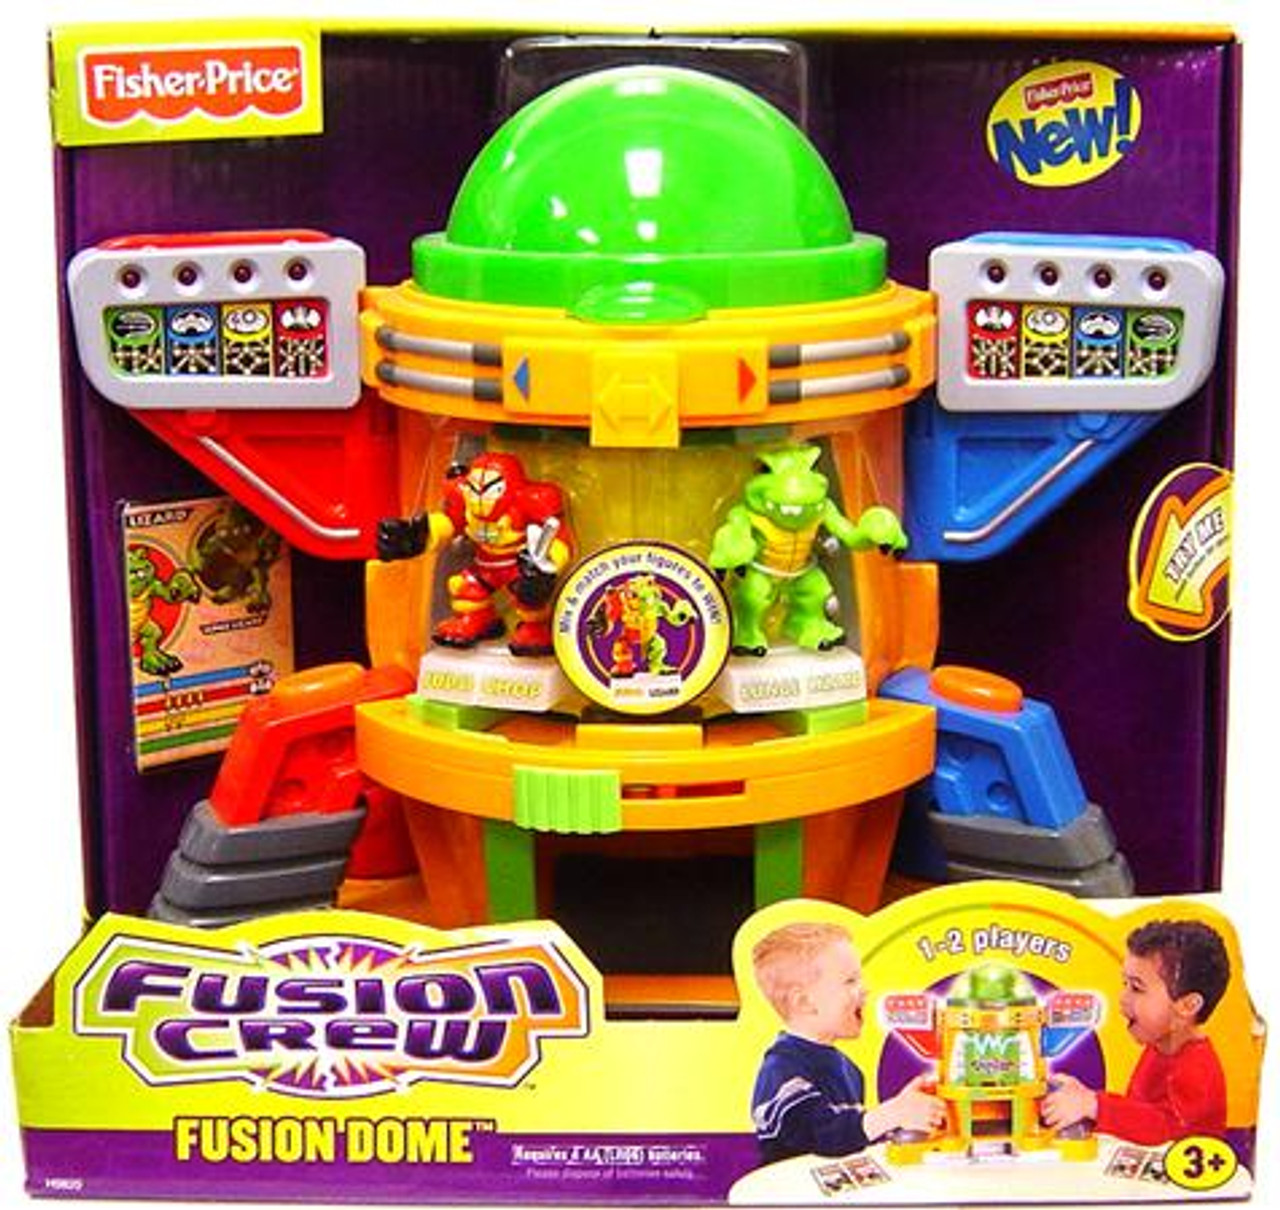 Fisher Price Fusion Crew Fusion Dome Playset